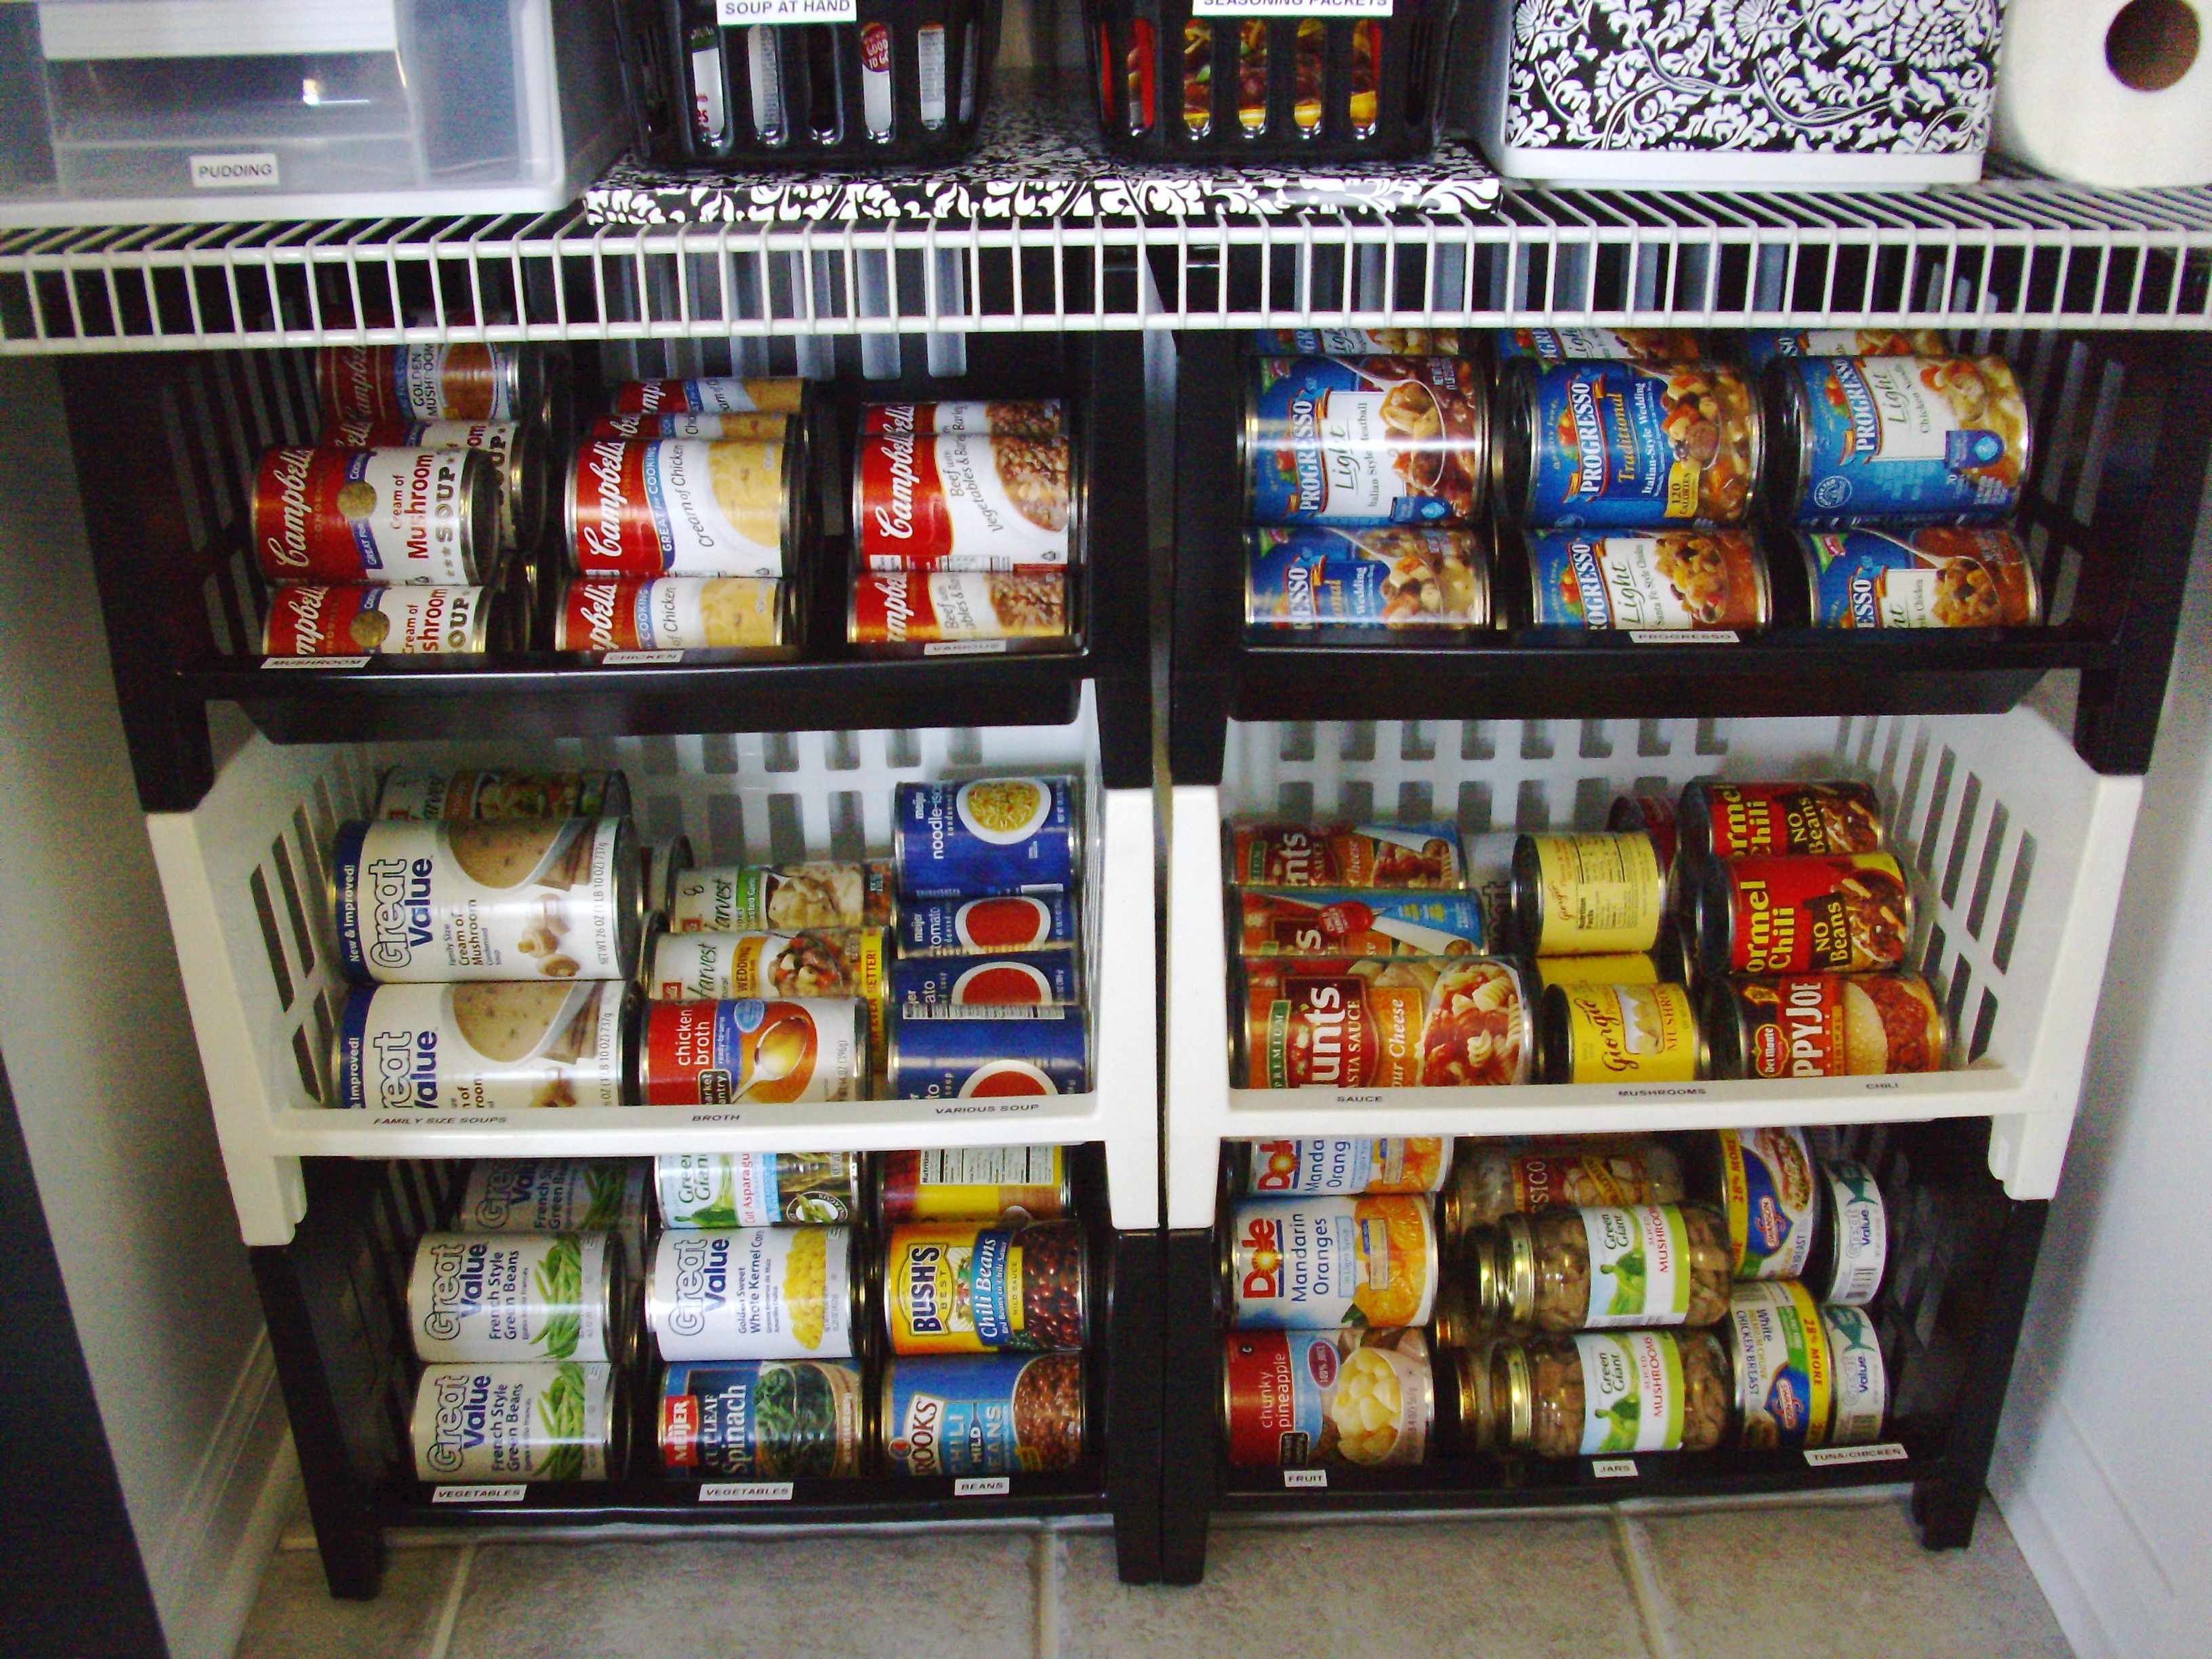 Pantry Organization I Repurposed Stacking Bins That Had Been In The Basement Forever For Organizing